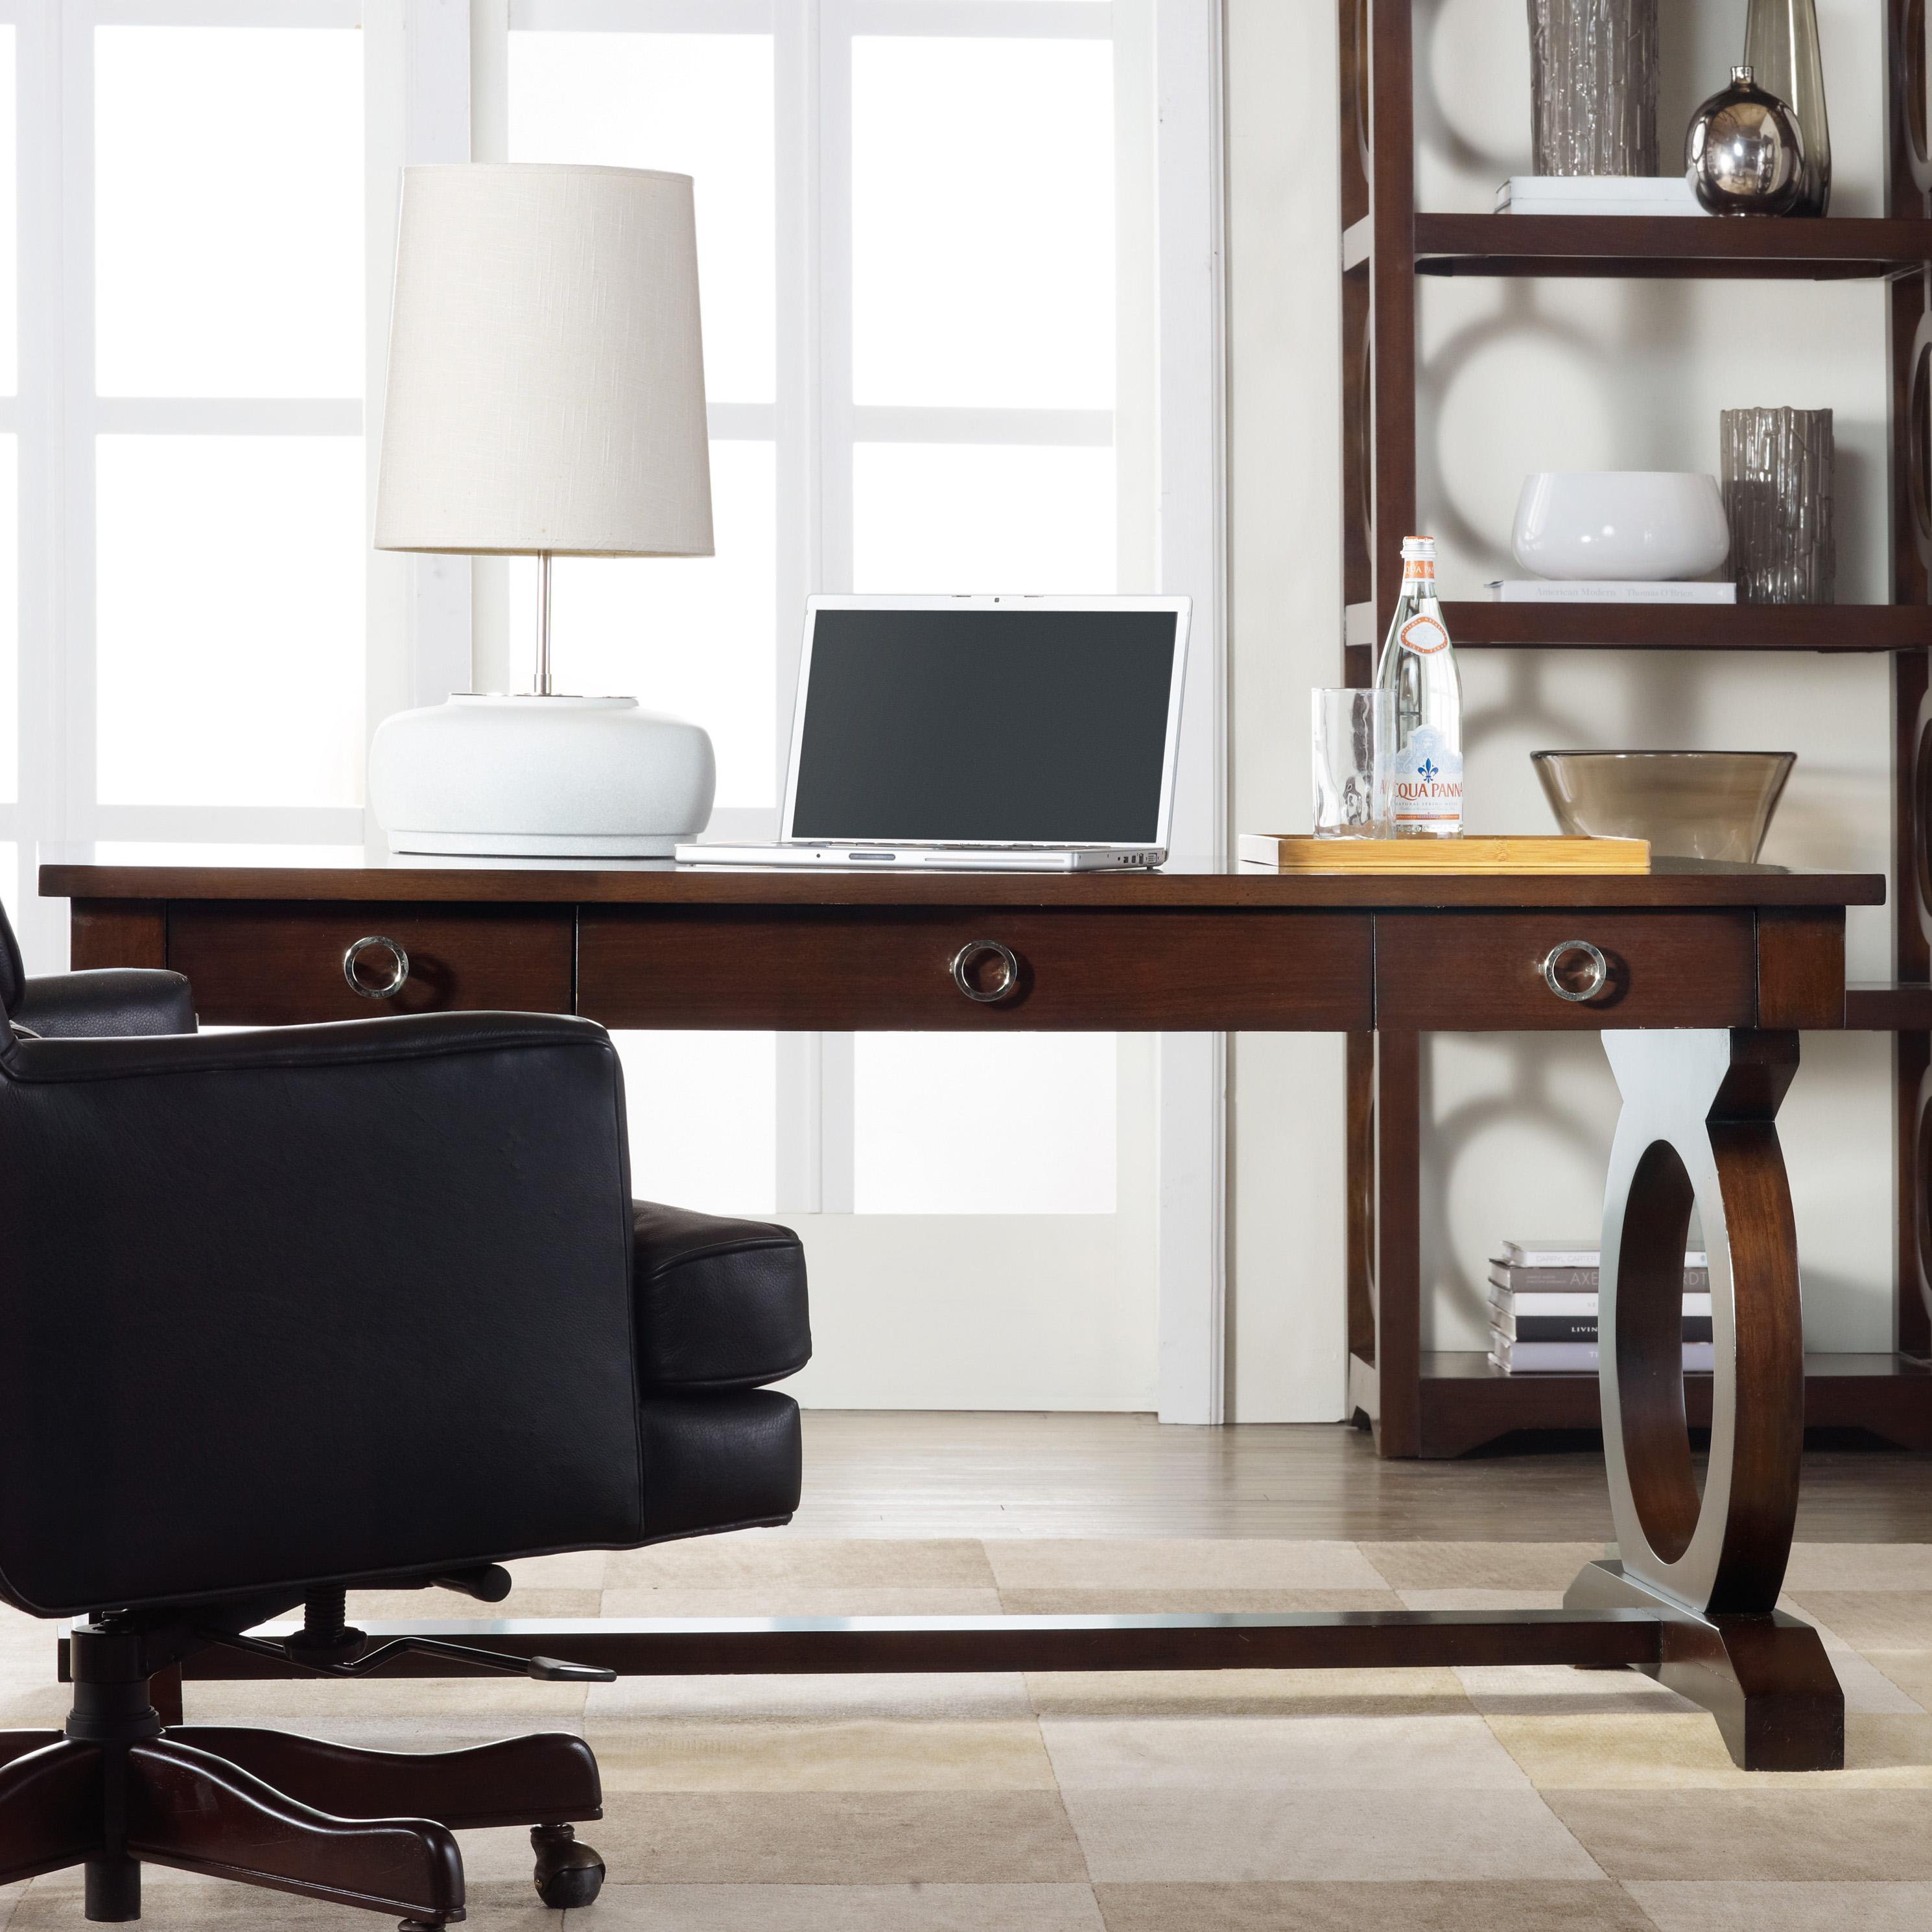 Hooker Furniture Kinsey Contemporary Writing Desk With Drop Front Keyboard Drawer And Open